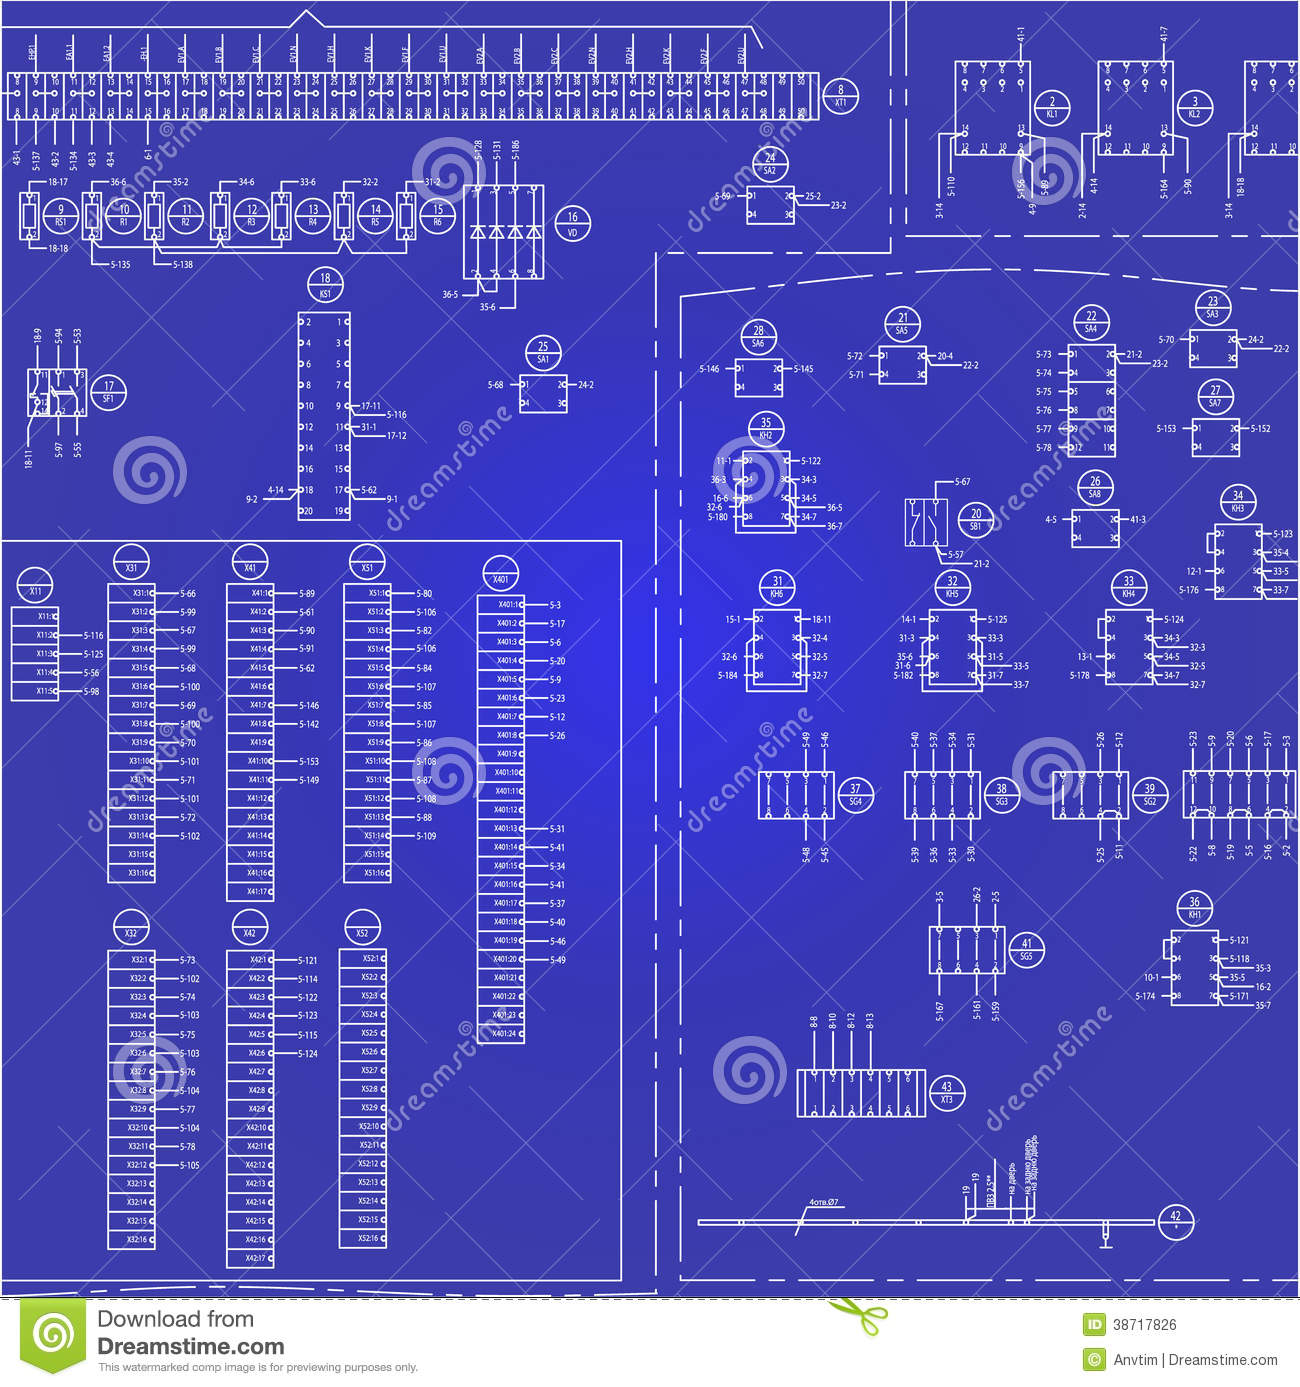 Free Electrical Wiring Diagram Software from thumbs.dreamstime.com